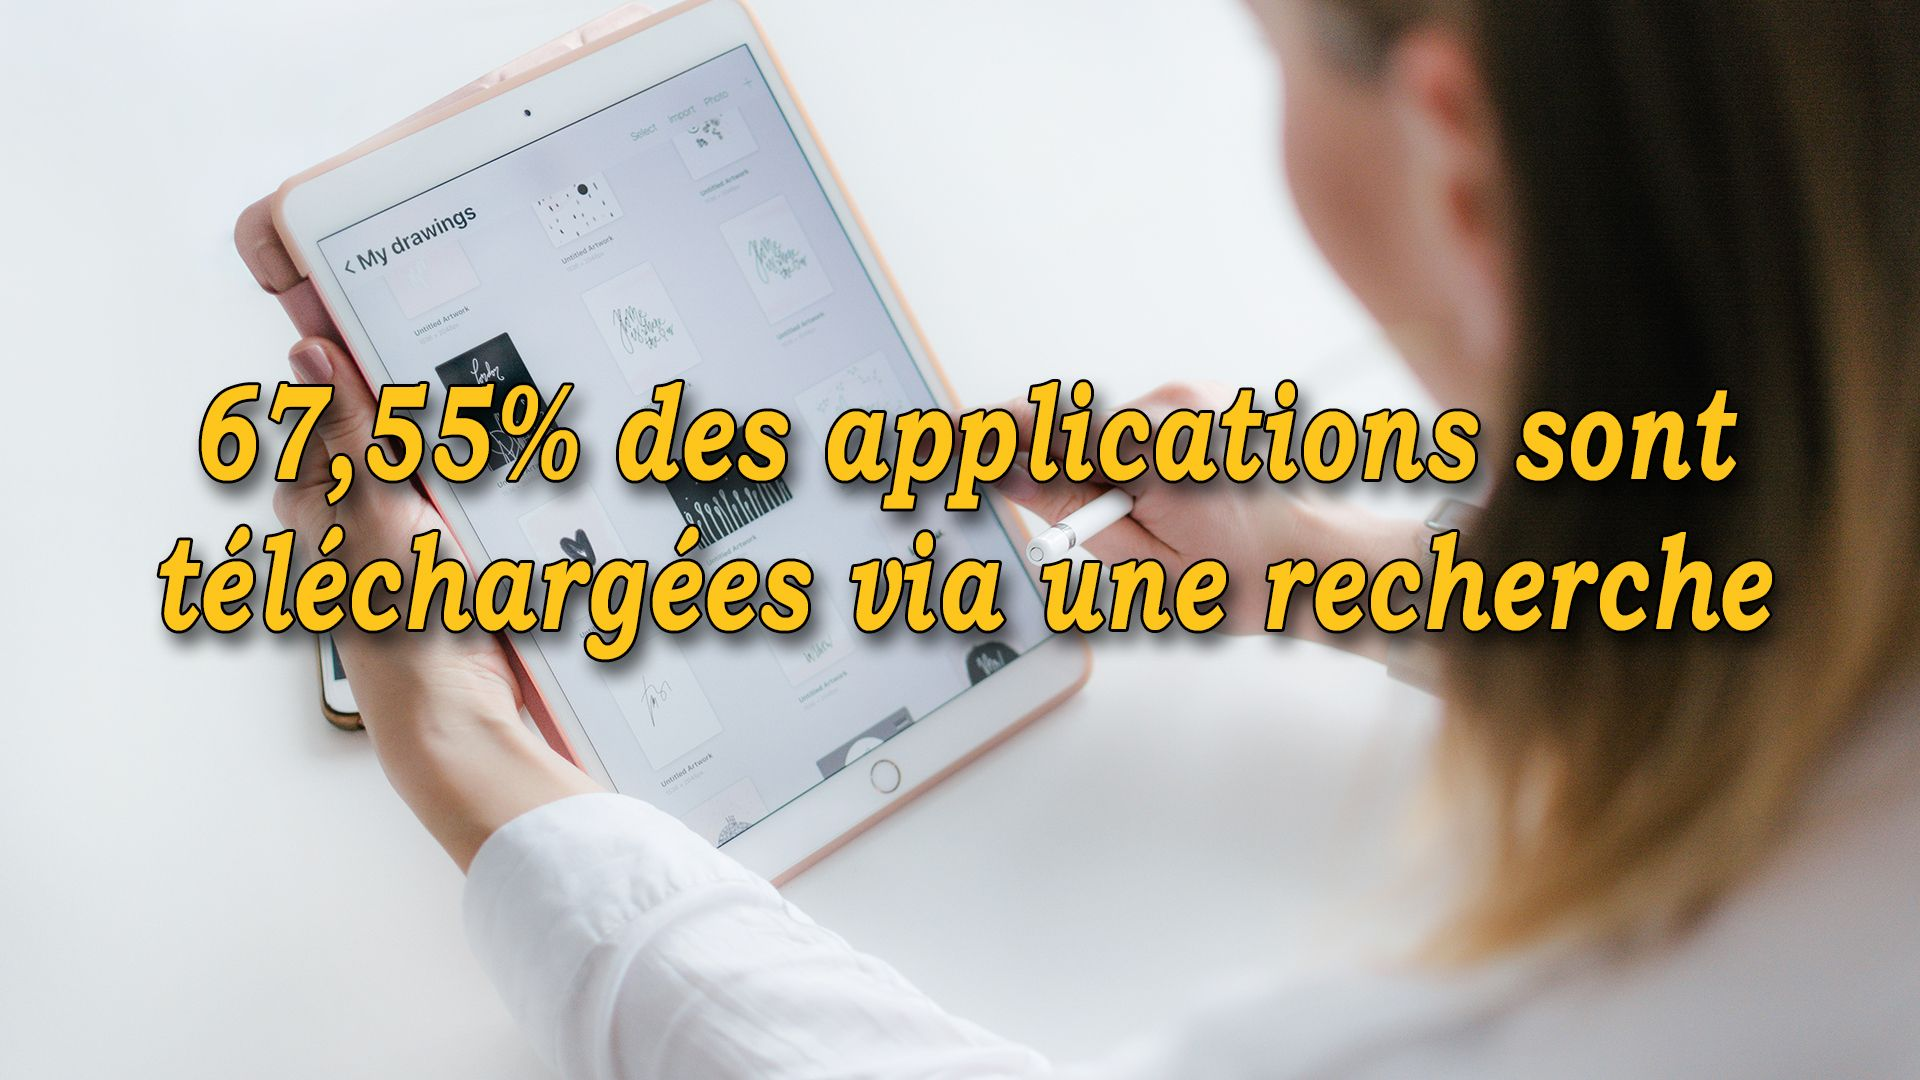 67,55% des applications sont téléchargées via une recherche #GrowthHacking #WebMarketing #FormationGrowthHacking #CentreDeFormationFrance #TunnelAARRR #AARRR #SocialMedia #CommunityManagement #SEO #app